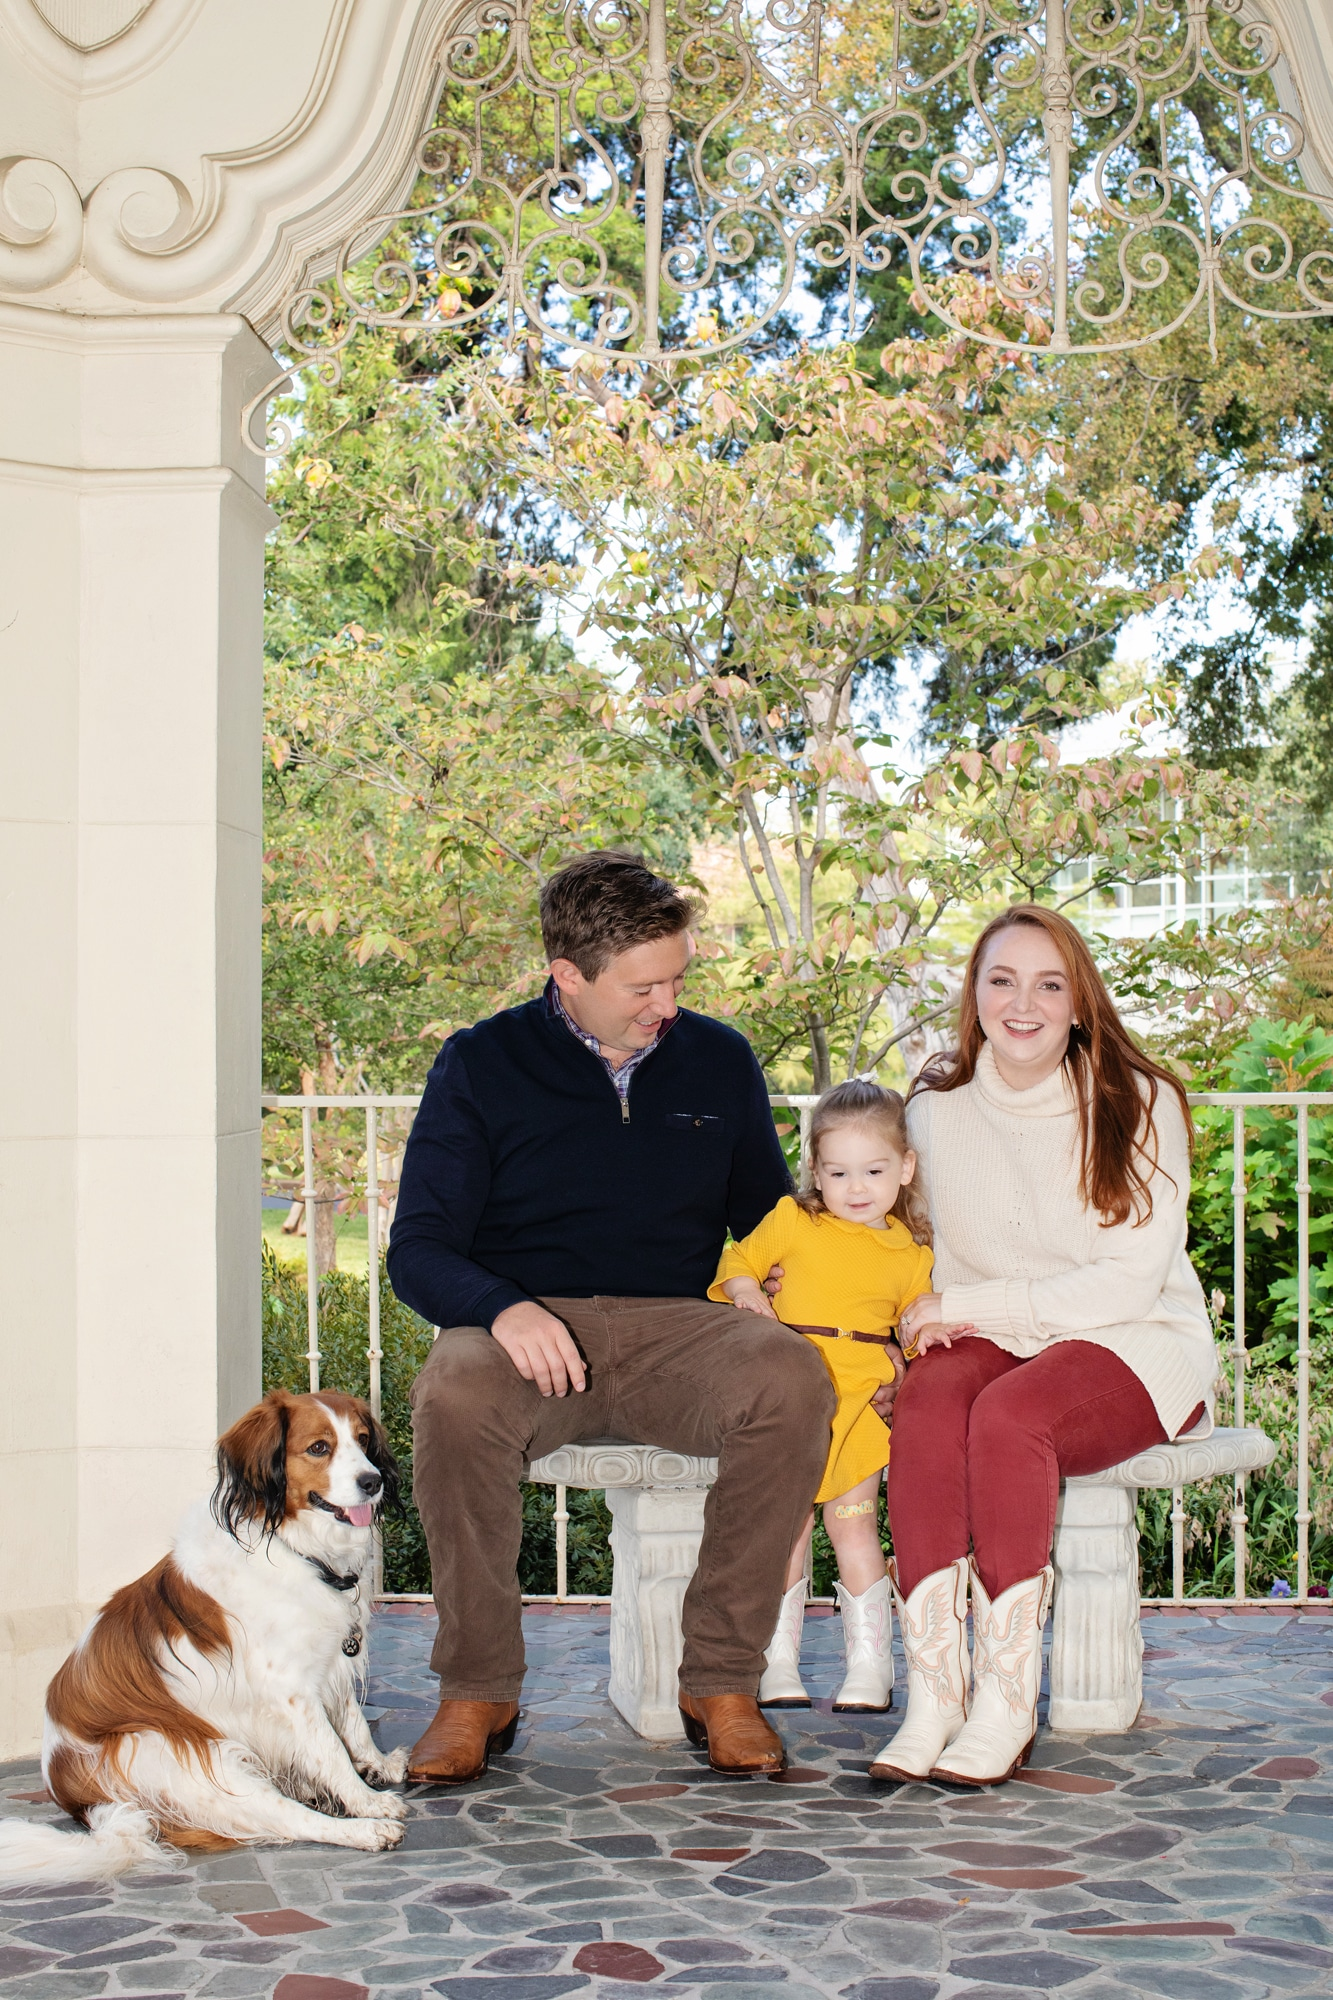 beautiful family session in fairytale location